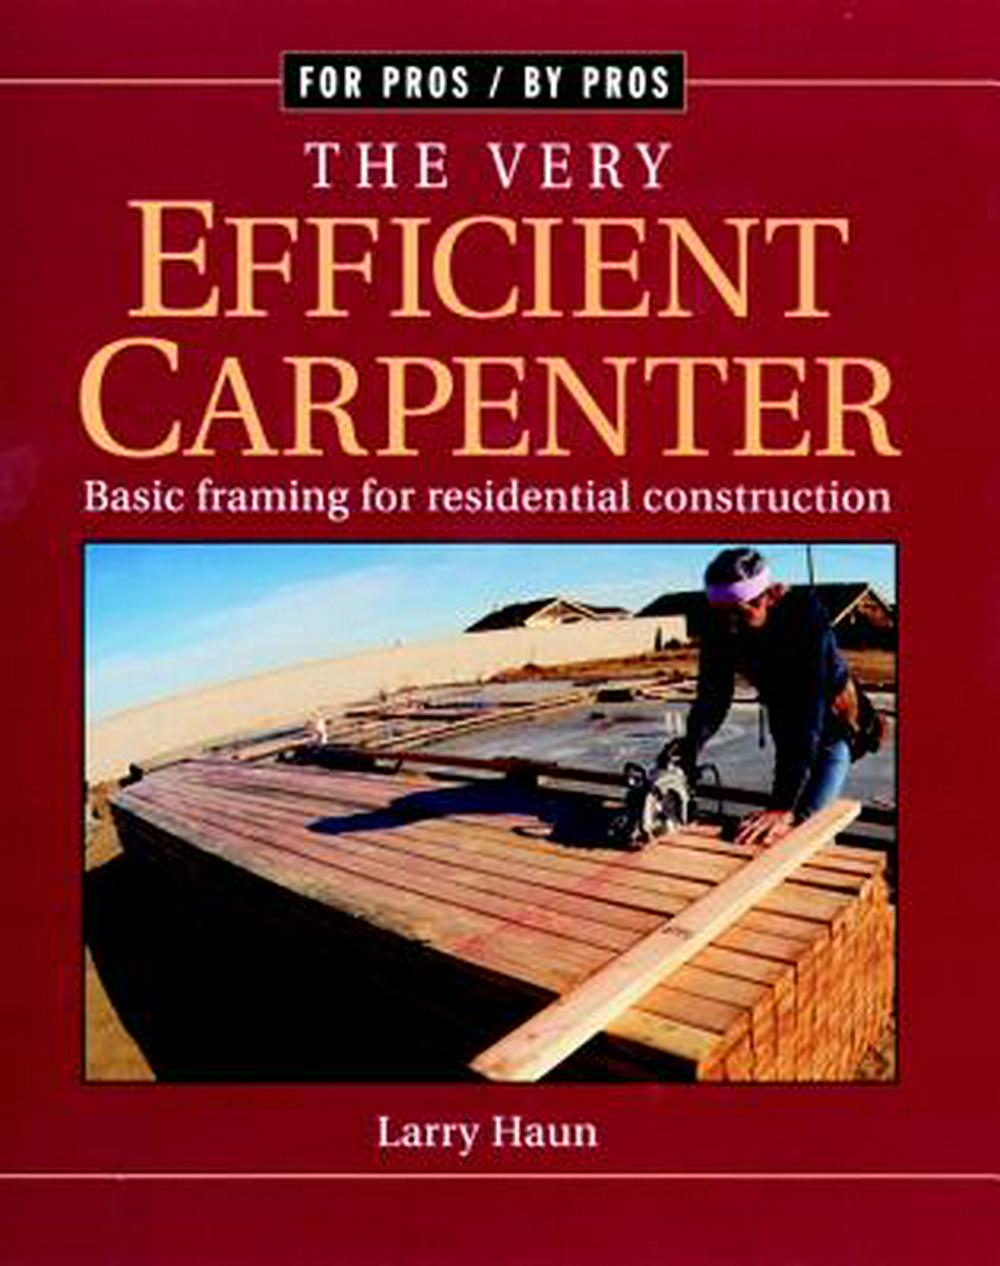 Very Efficient Carpenter